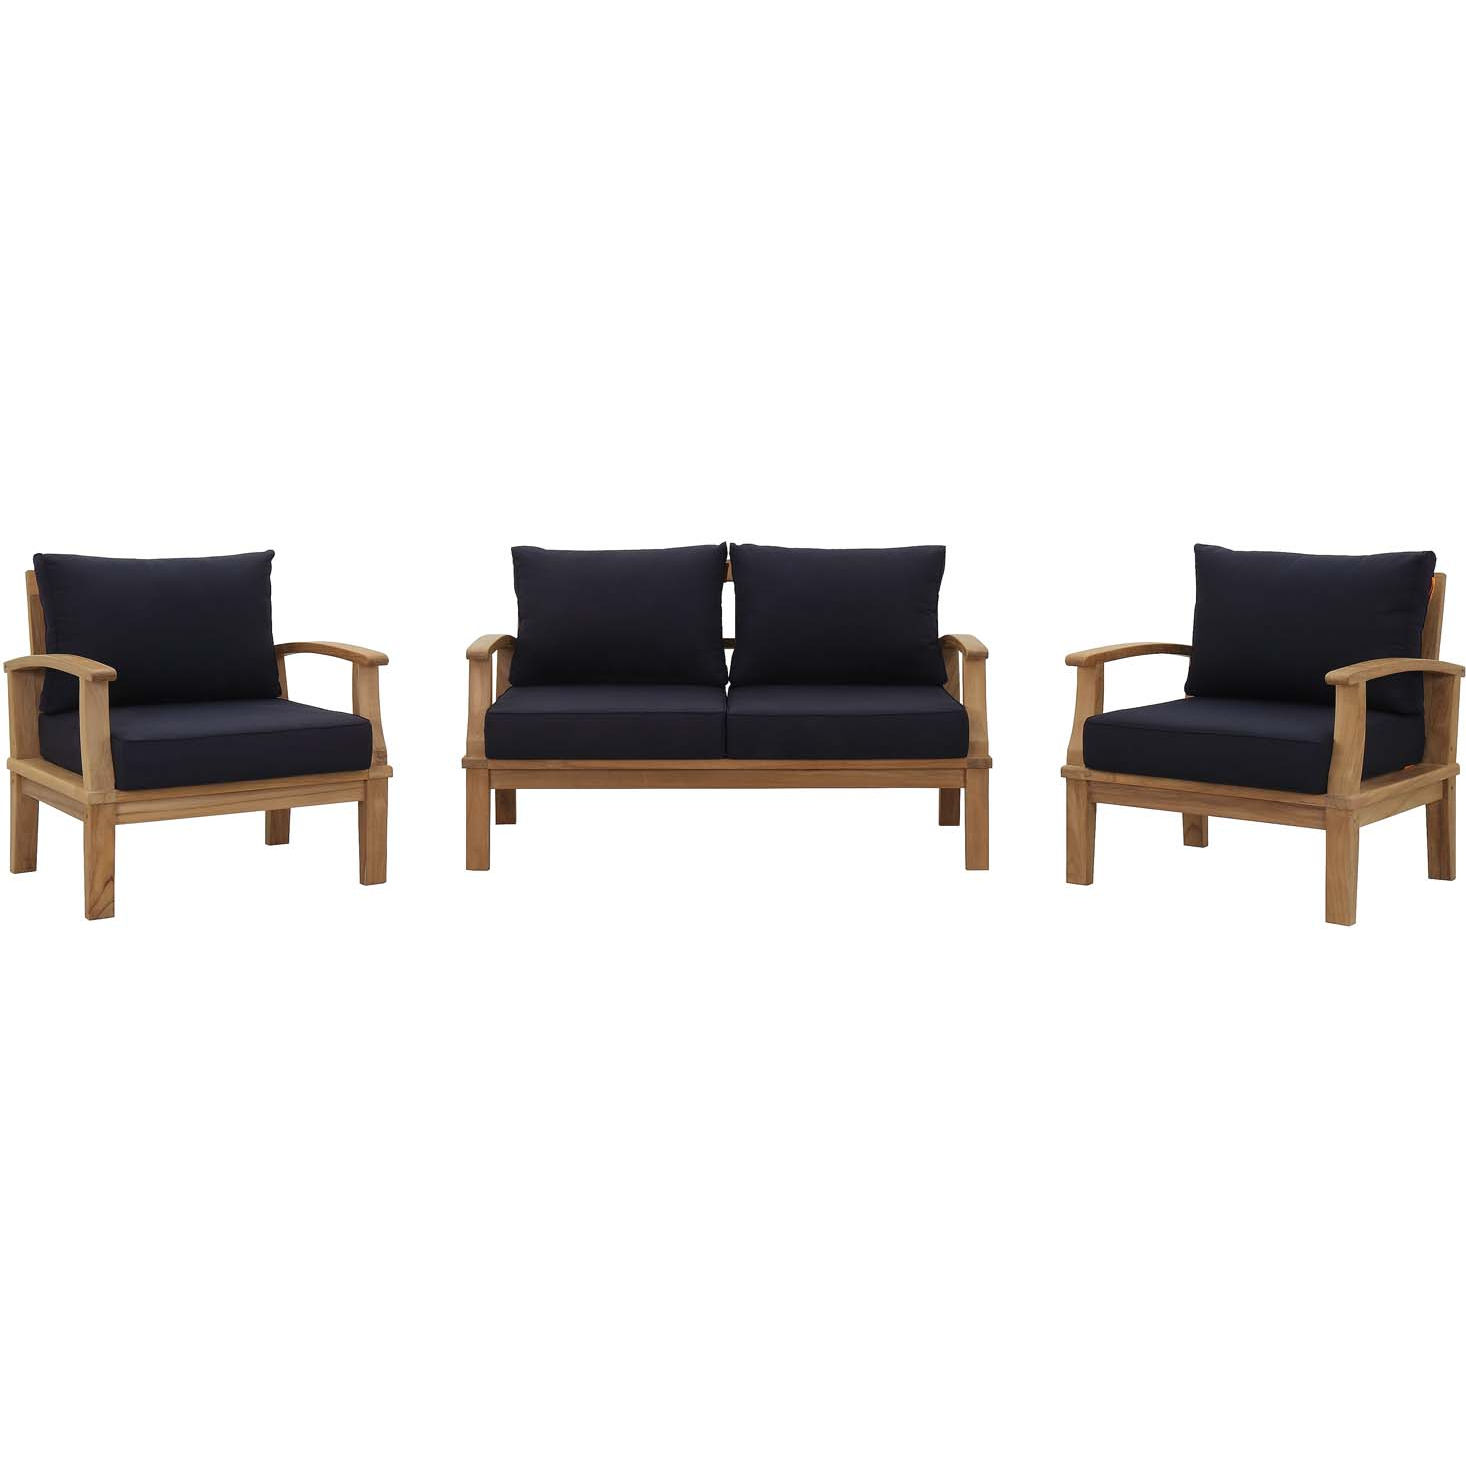 Marina 3 Piece Outdoor Sofa Set in Teak & Navy Blue Fabric by Modway